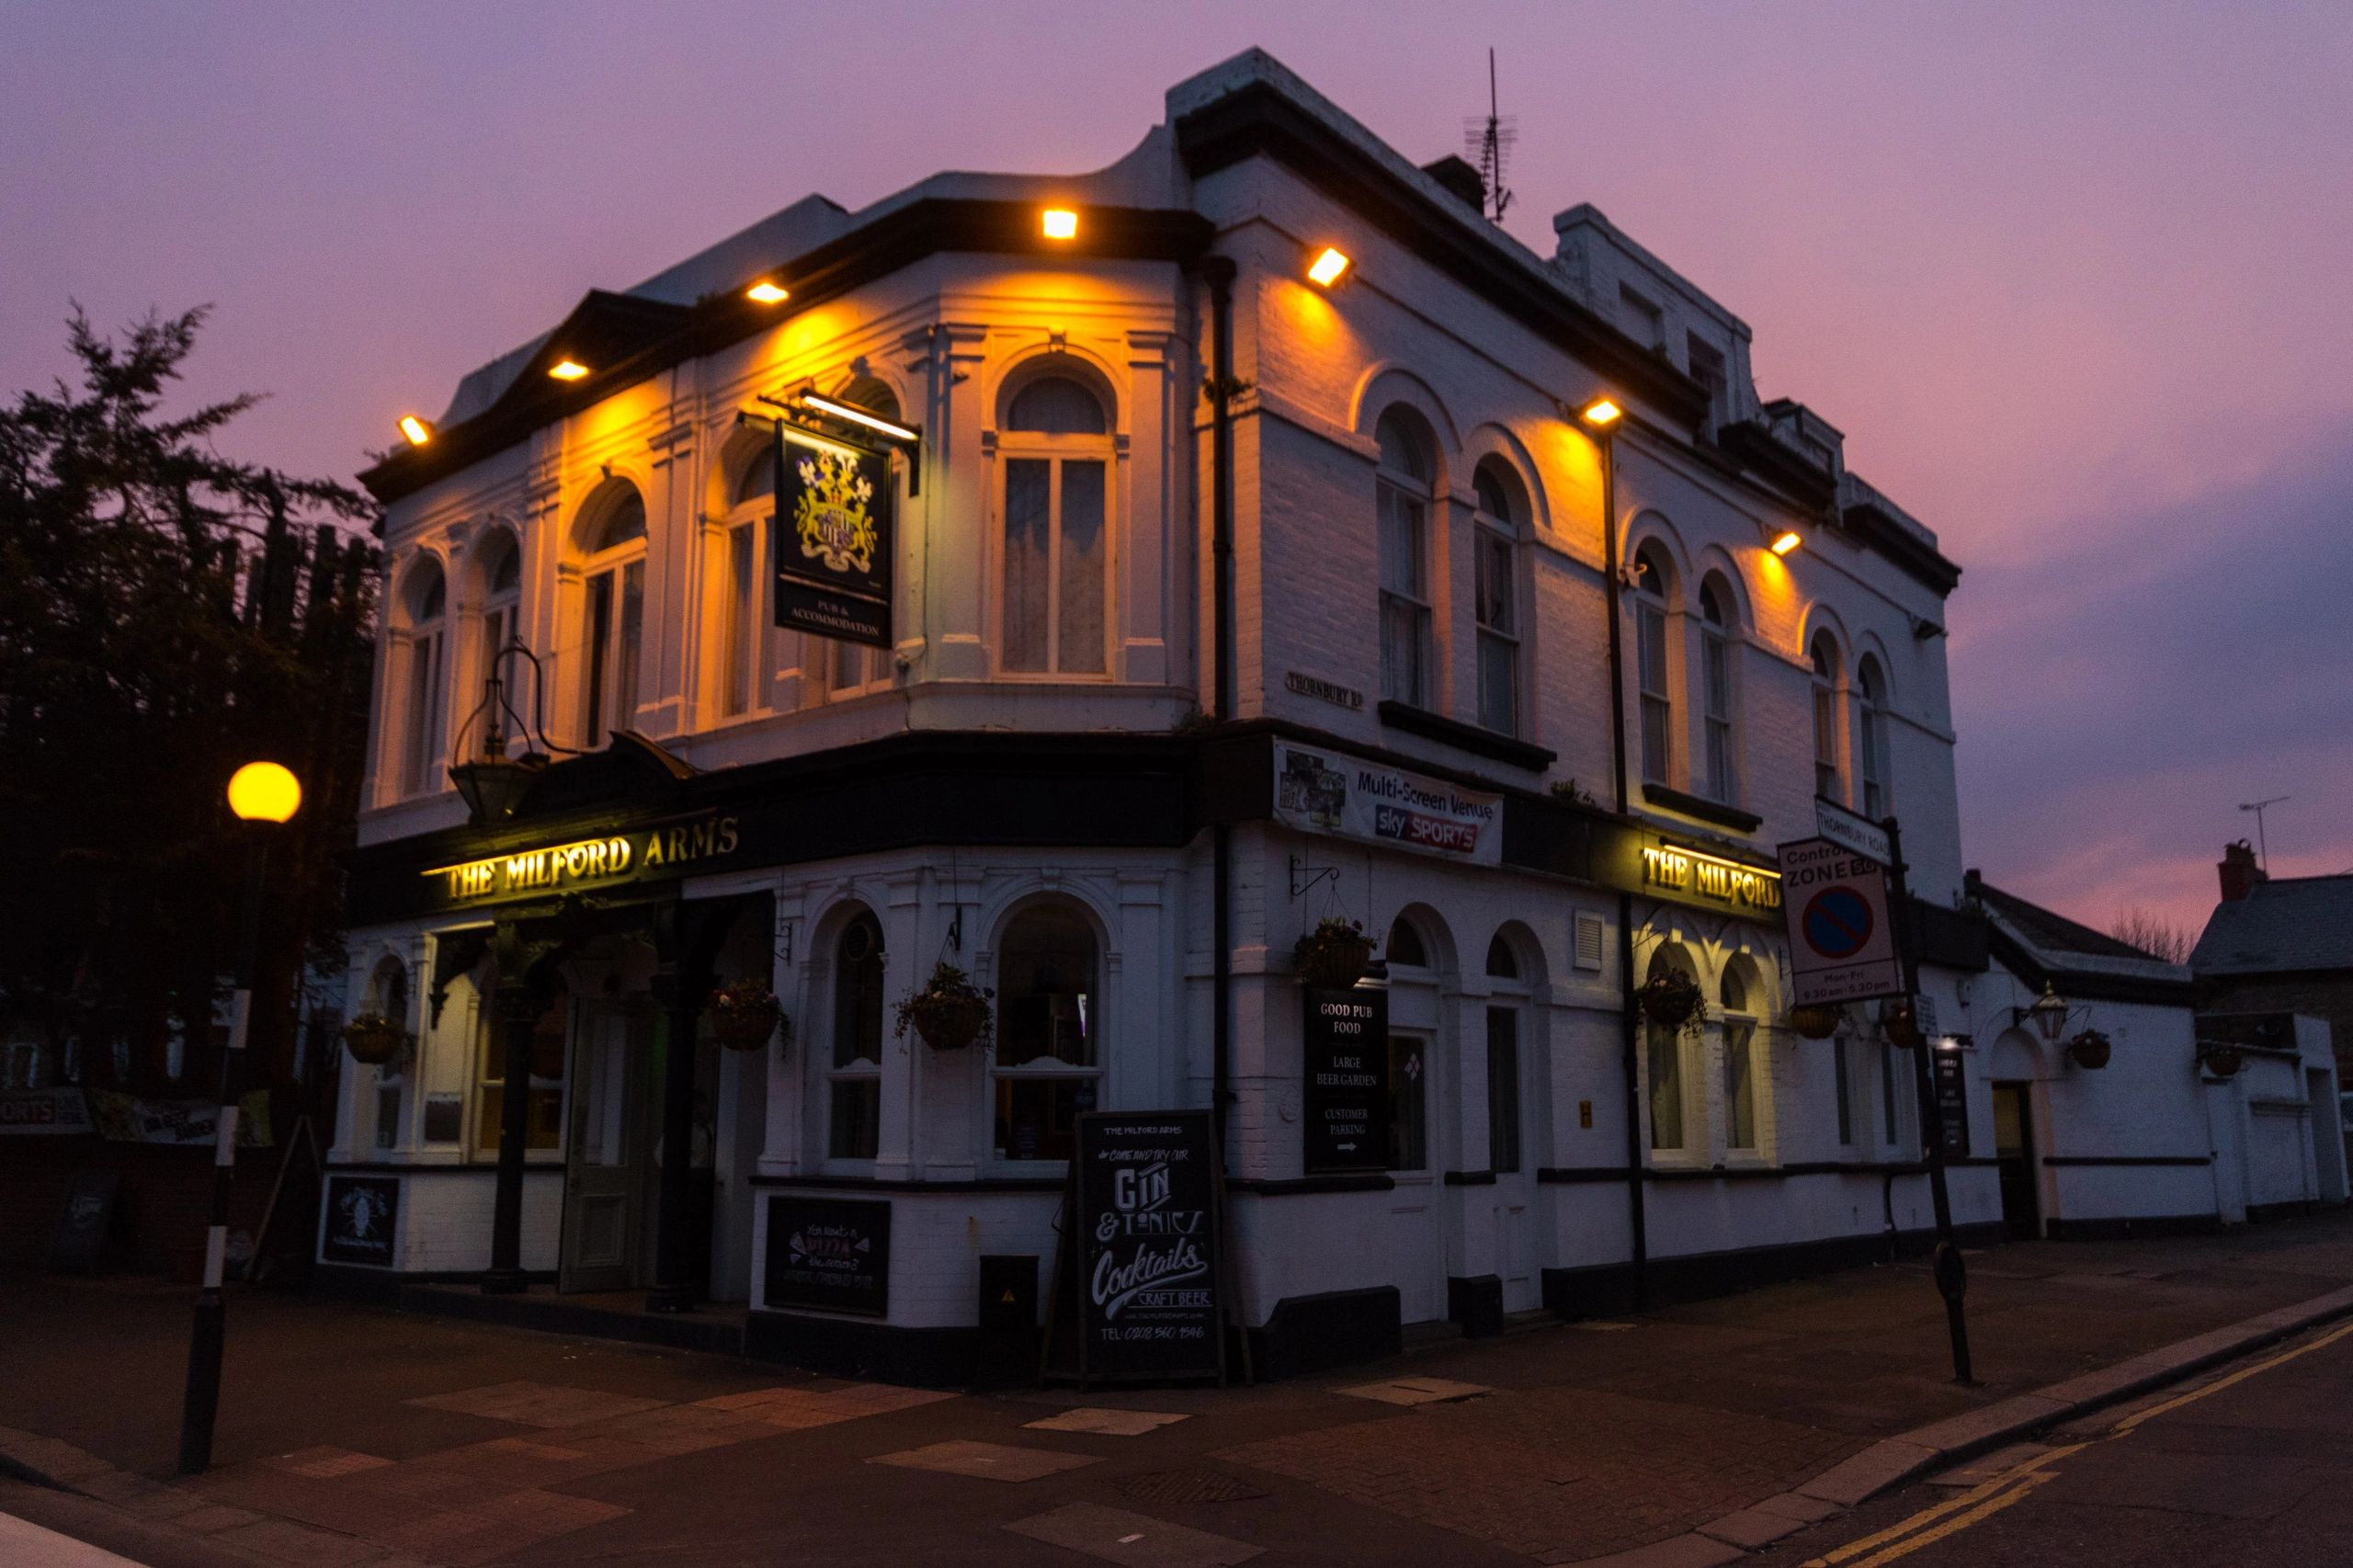 Award winning pub in Isleworth, The Milford Arms